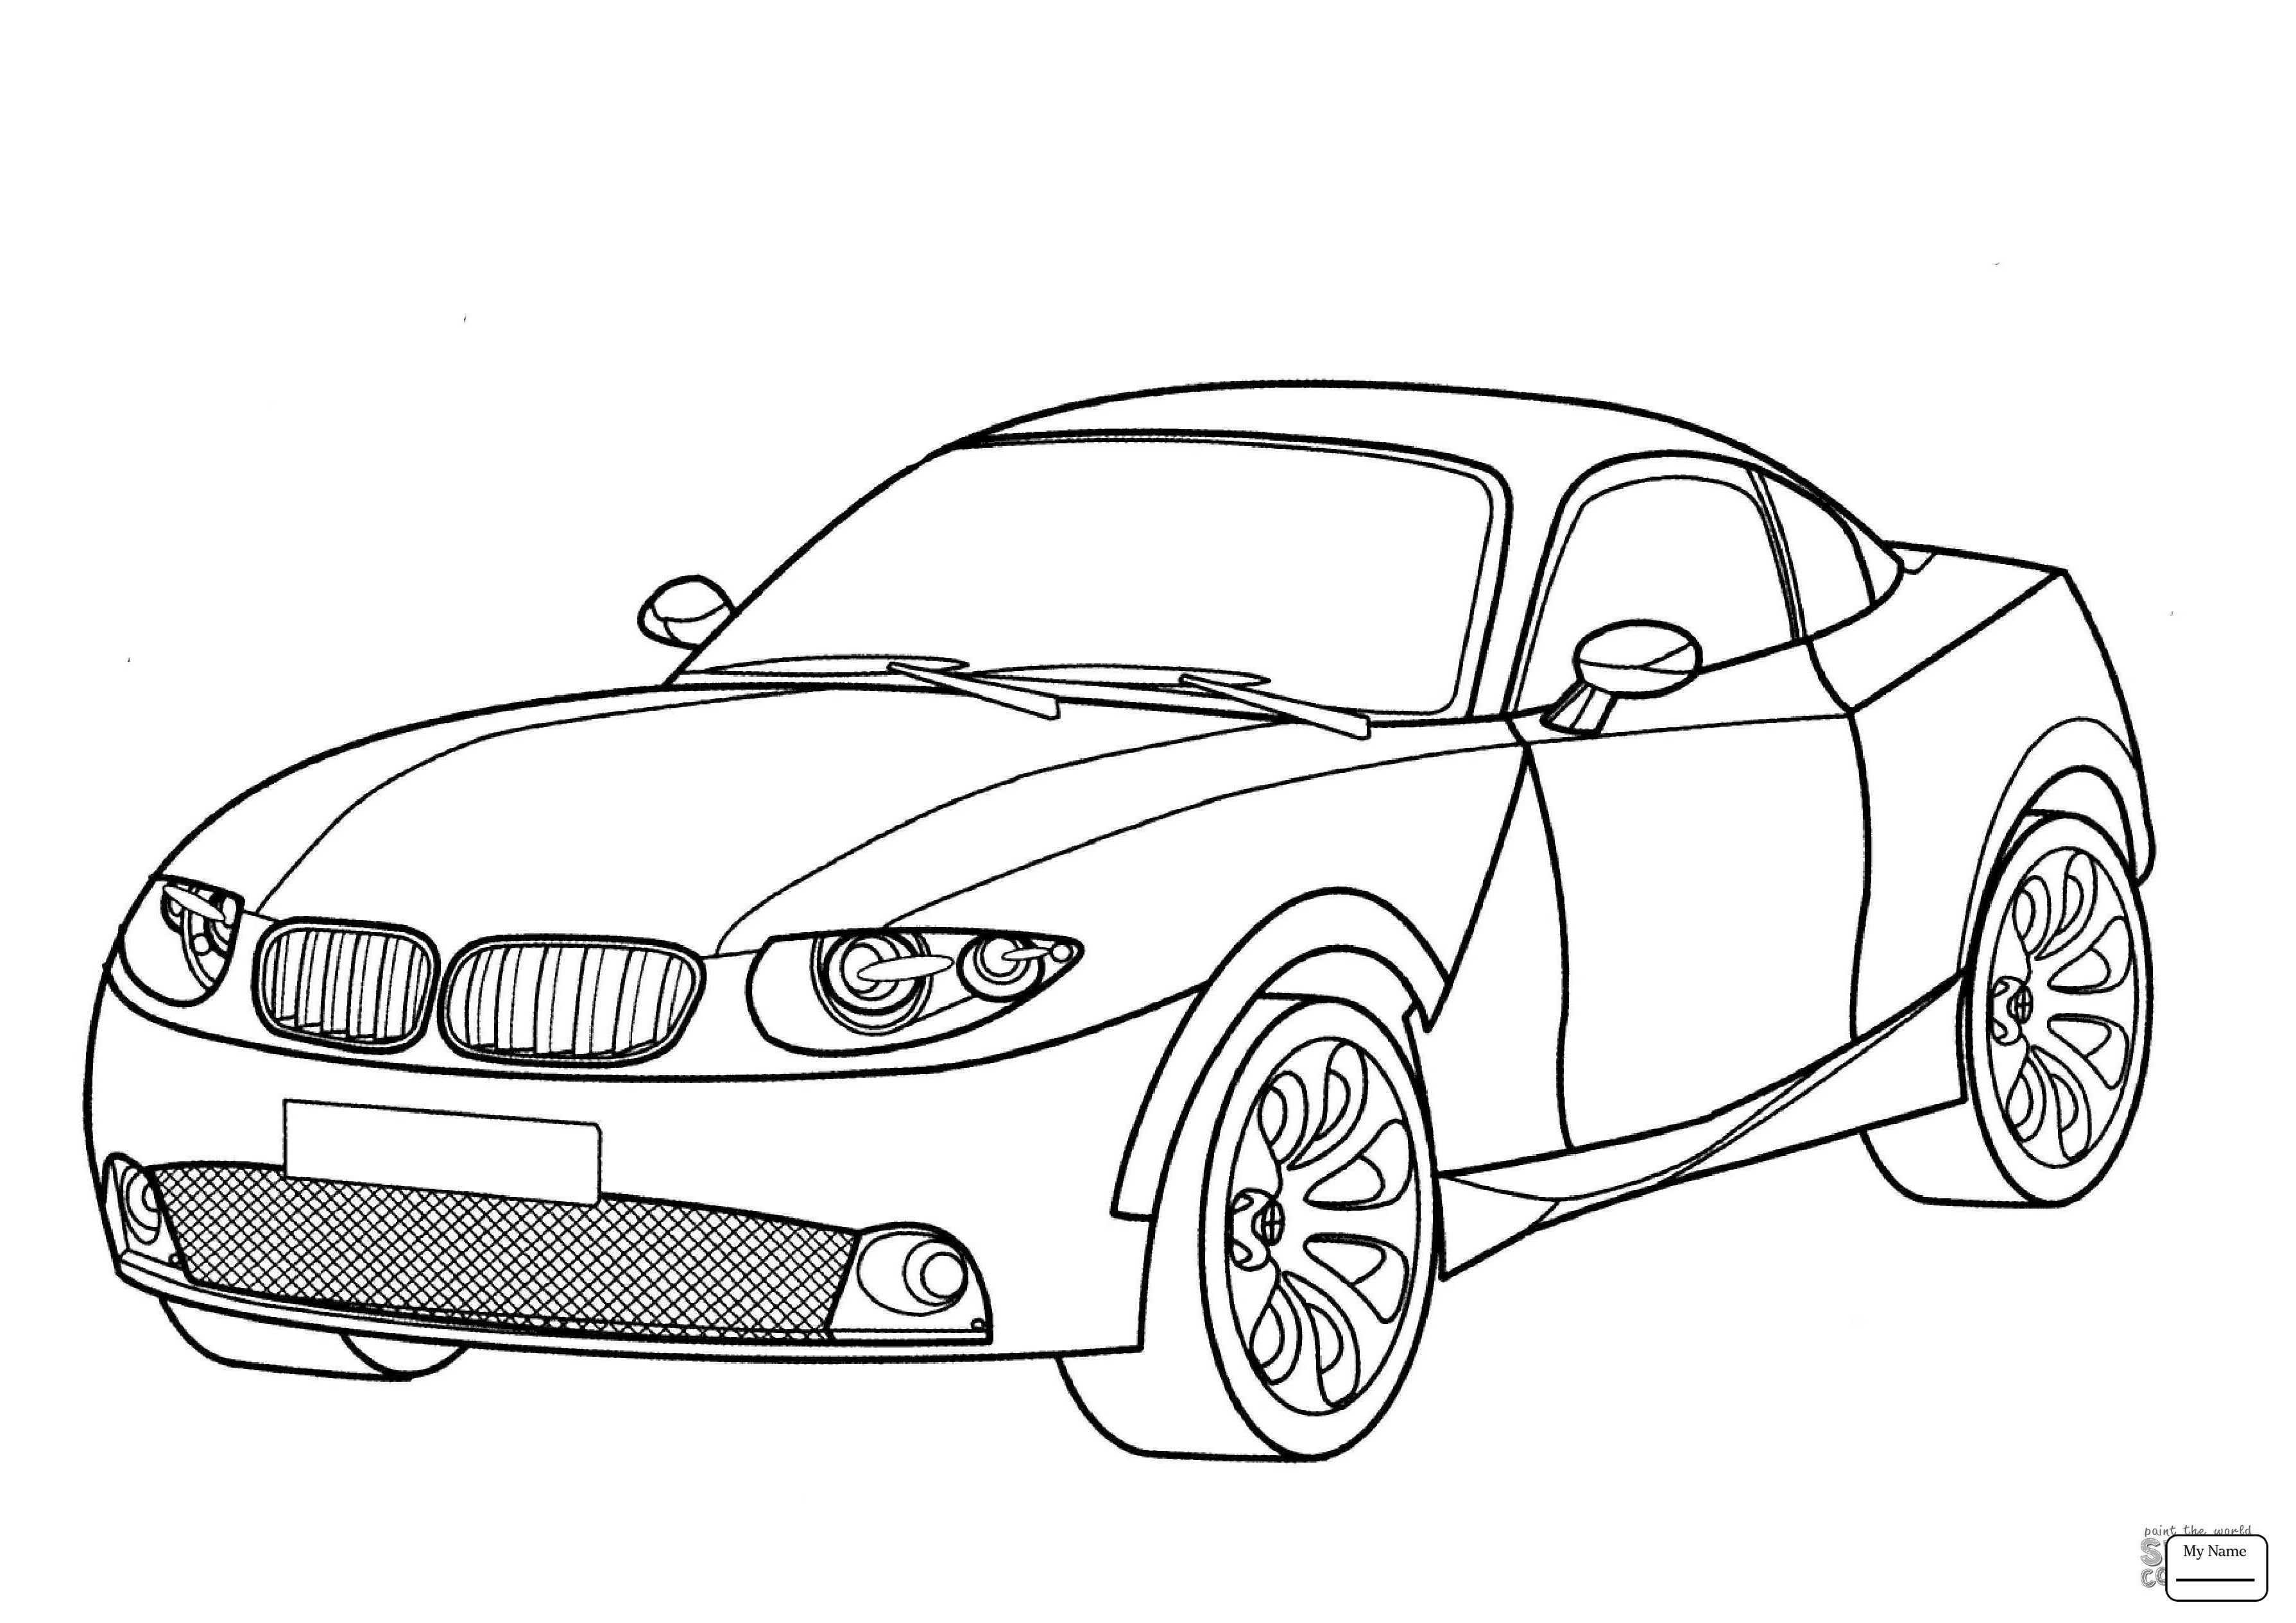 The Best Free Bmw Drawing Images Download From 338 Free Drawings Of Bmw At Getdrawings